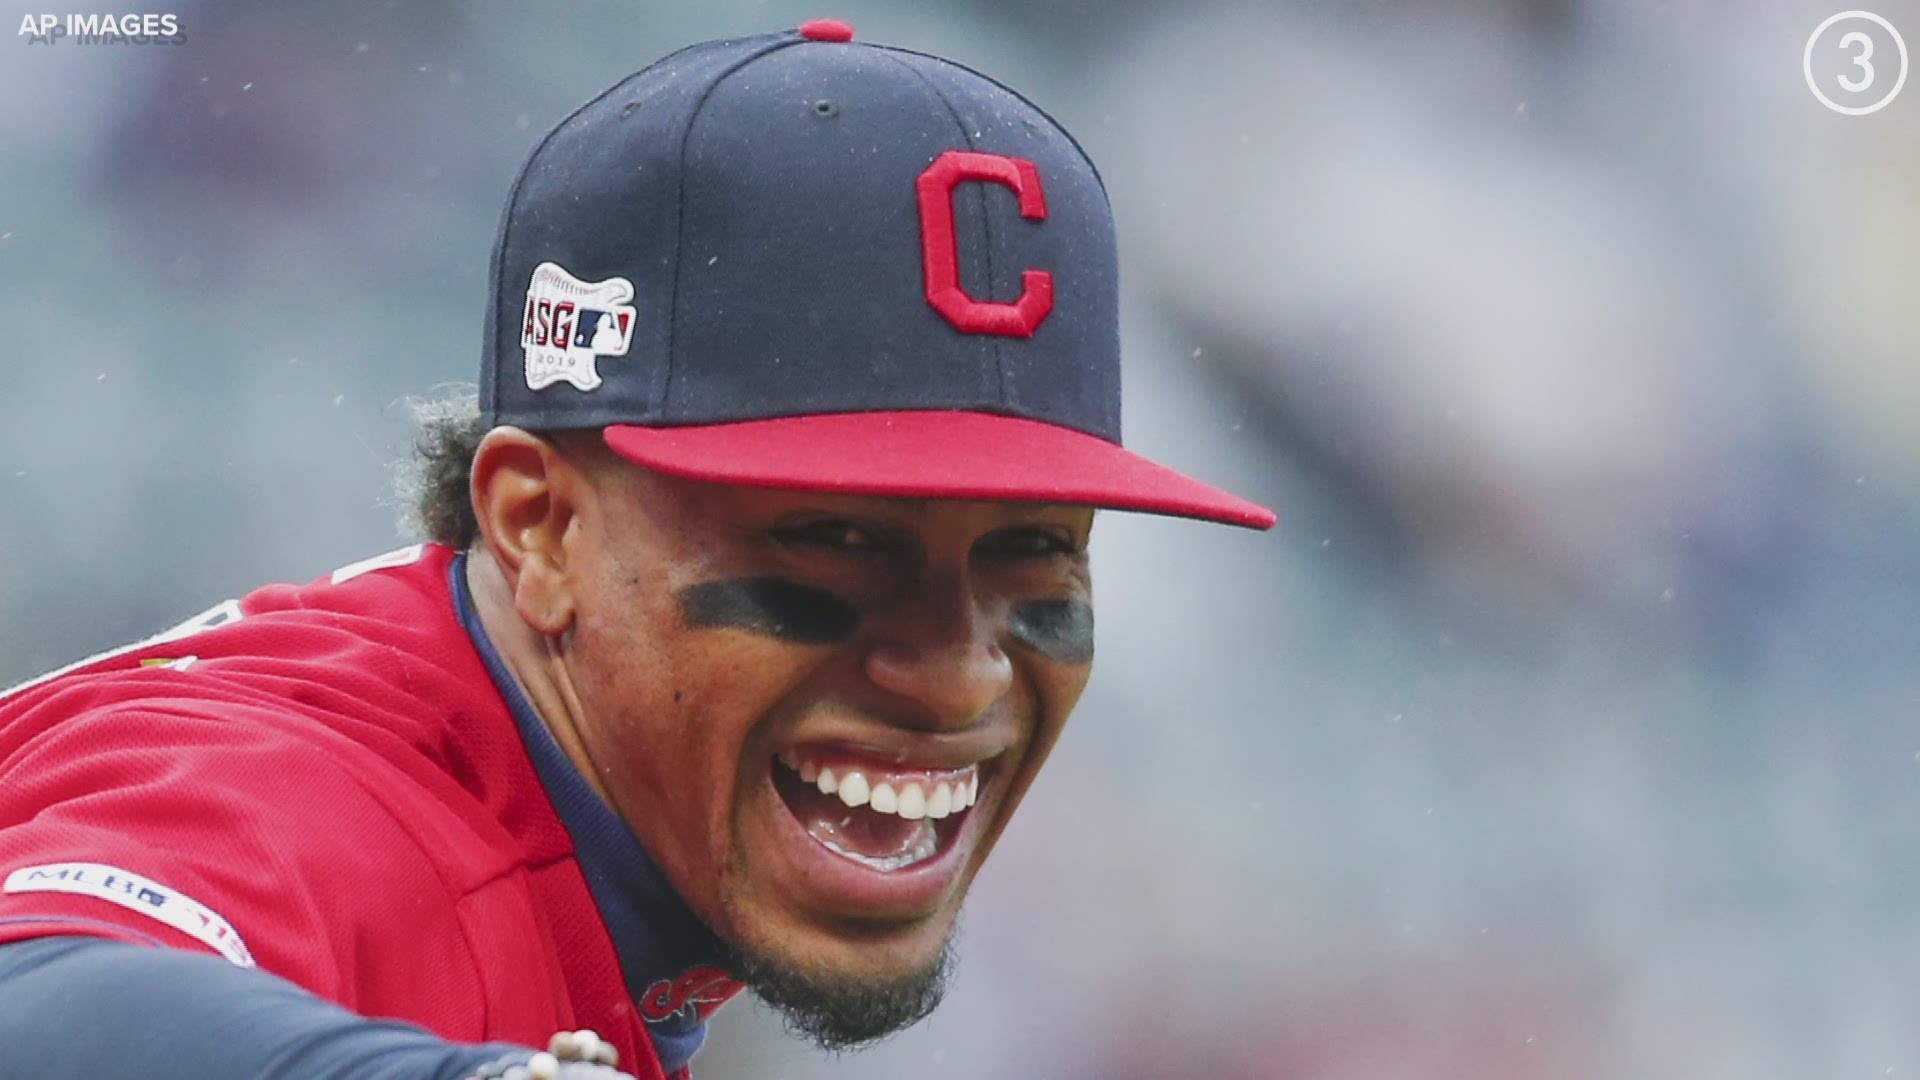 Report: Francisco Lindor 'is going to get traded' by deadline